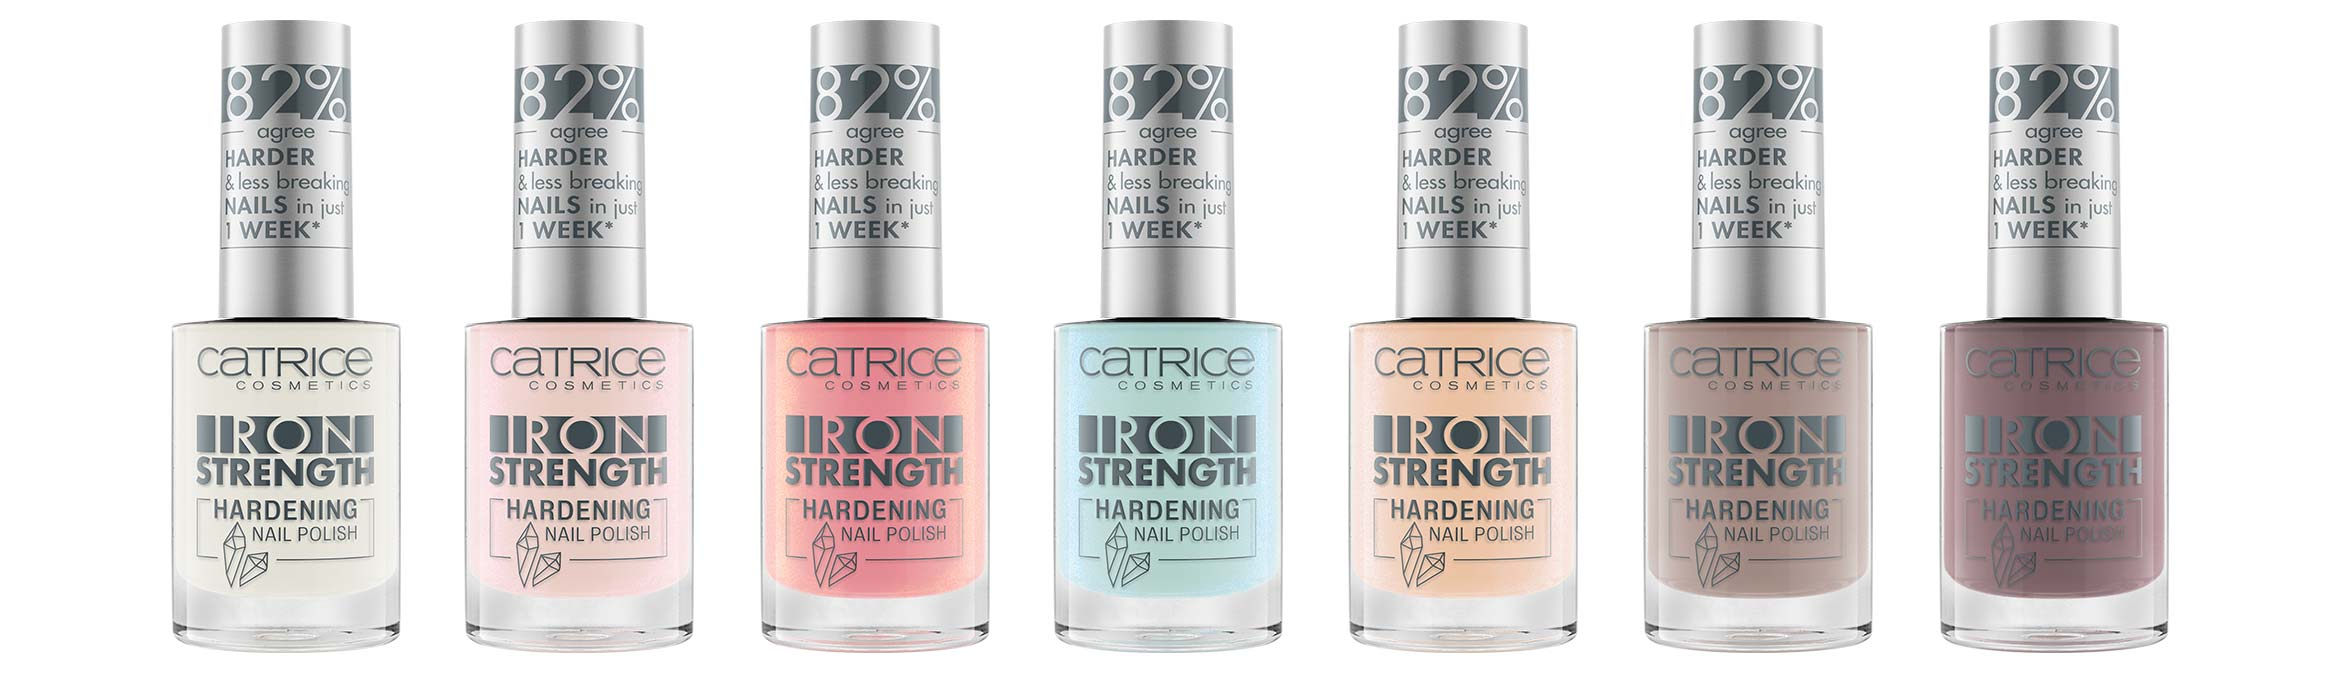 catrice-iron-strength-hardening-nail-polish